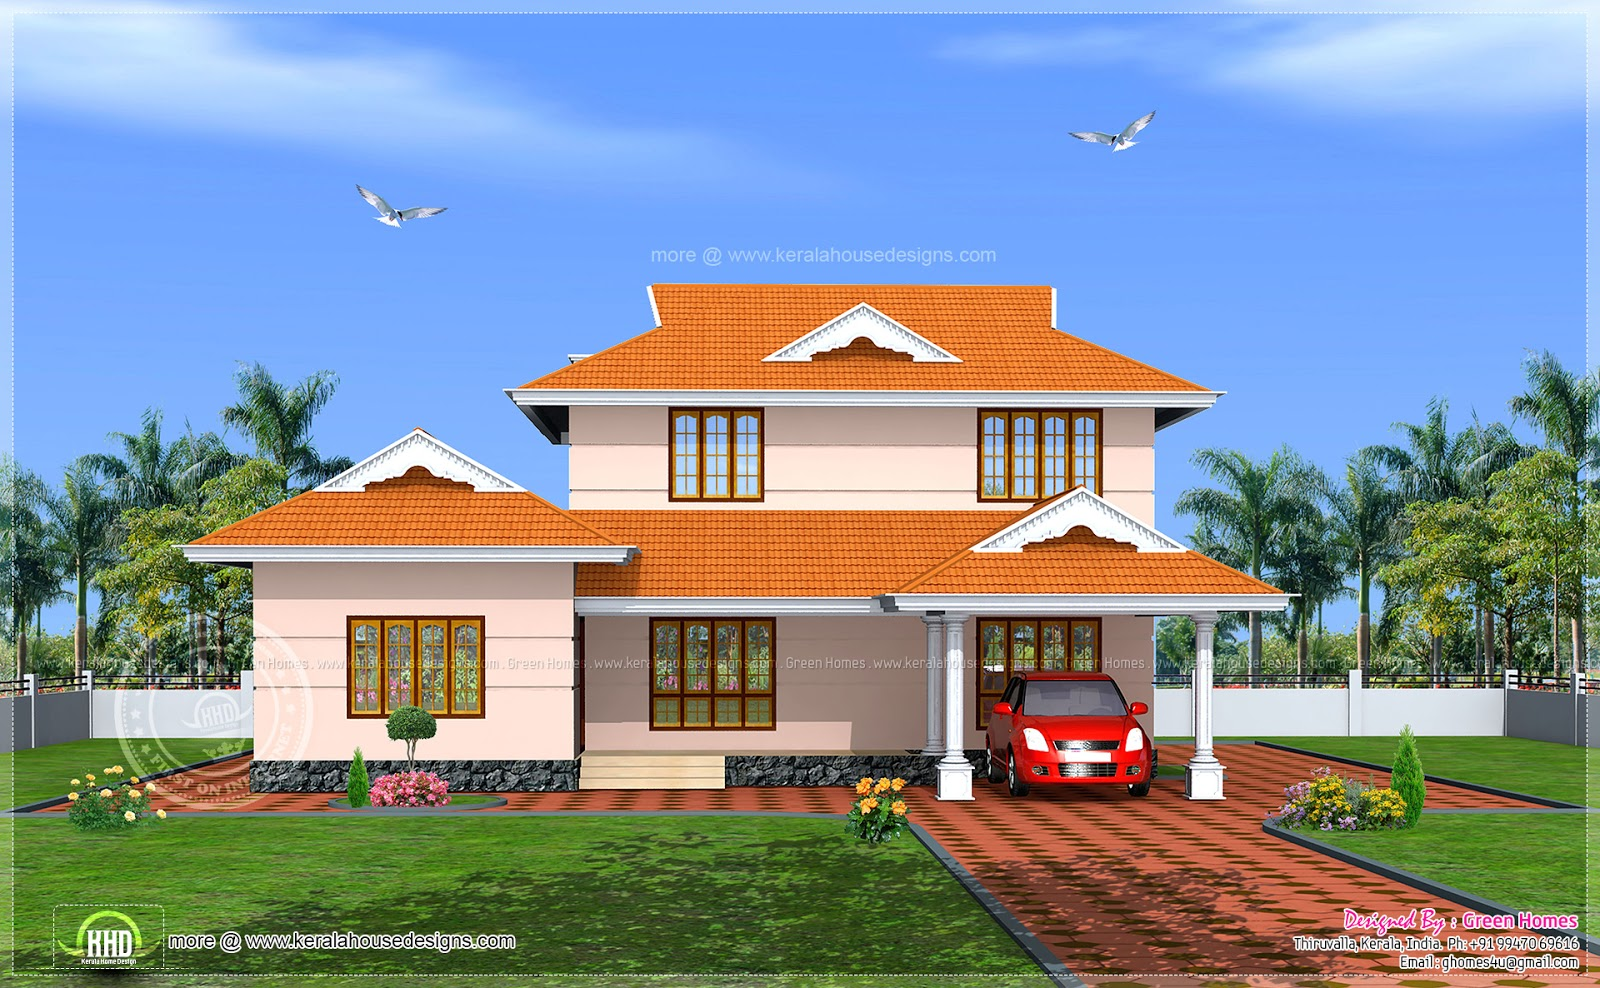 228 square meter kerala model house exterior kerala home new model kerala home design 2015 elegant home